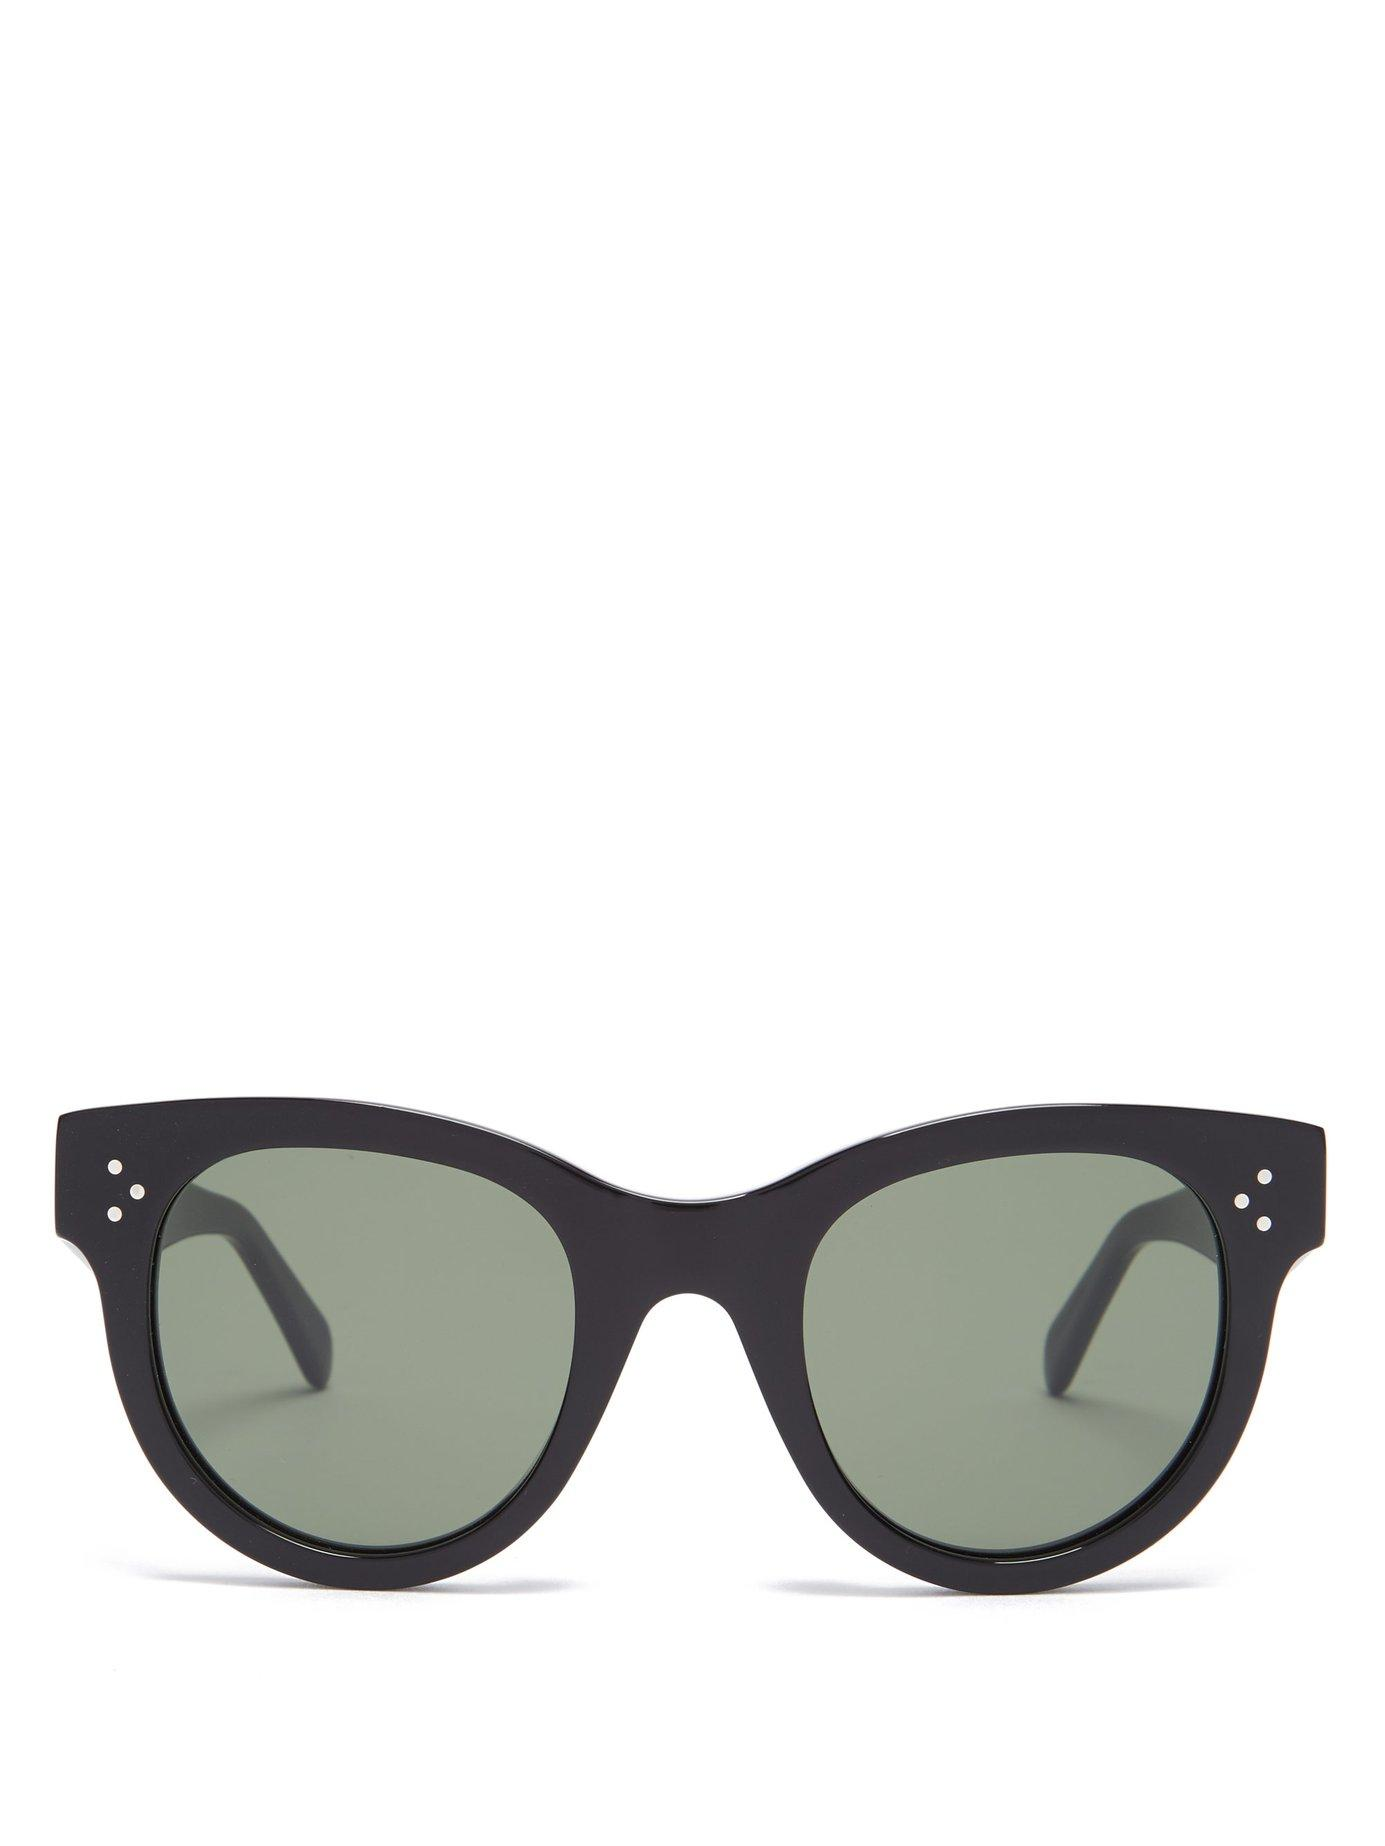 637ccb1637e1 Lyst - Céline Baby Audrey Cat Eye Acetate Sunglasses in Black